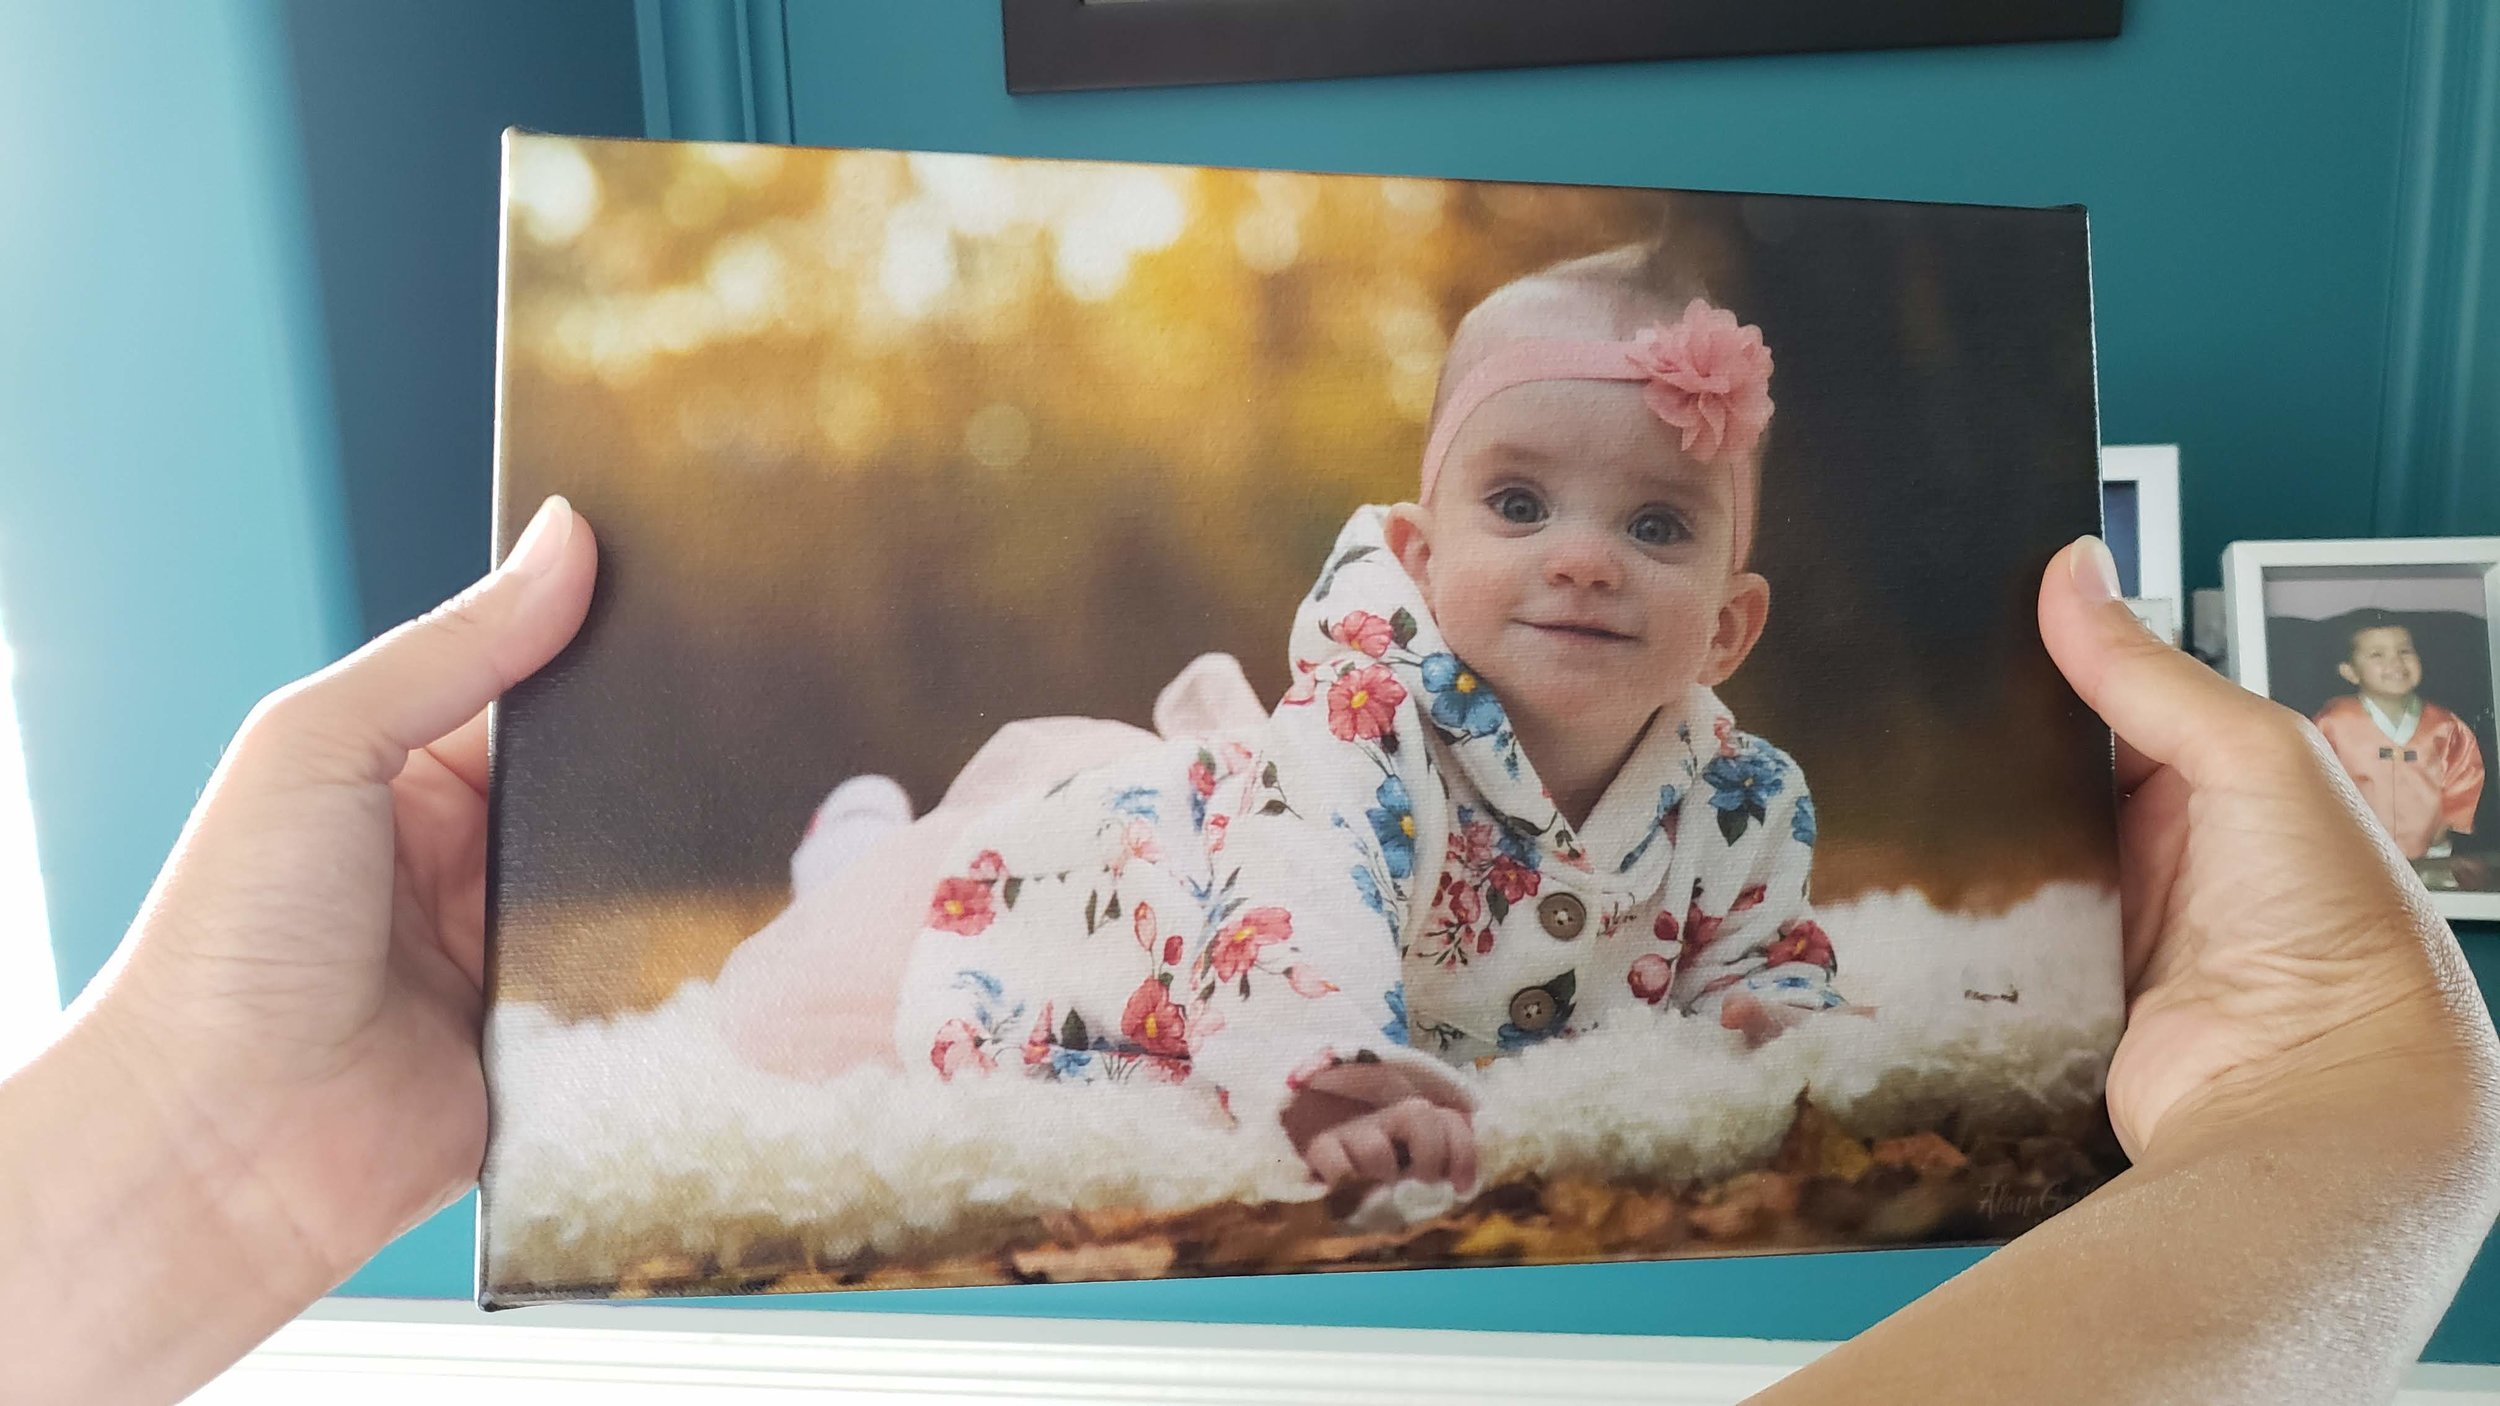 A wide variety of print options are available including luster, glossy, and metallic paper prints, high gloss metallic aluminum sheets with mounts, mounted canvas wraps, and many more!